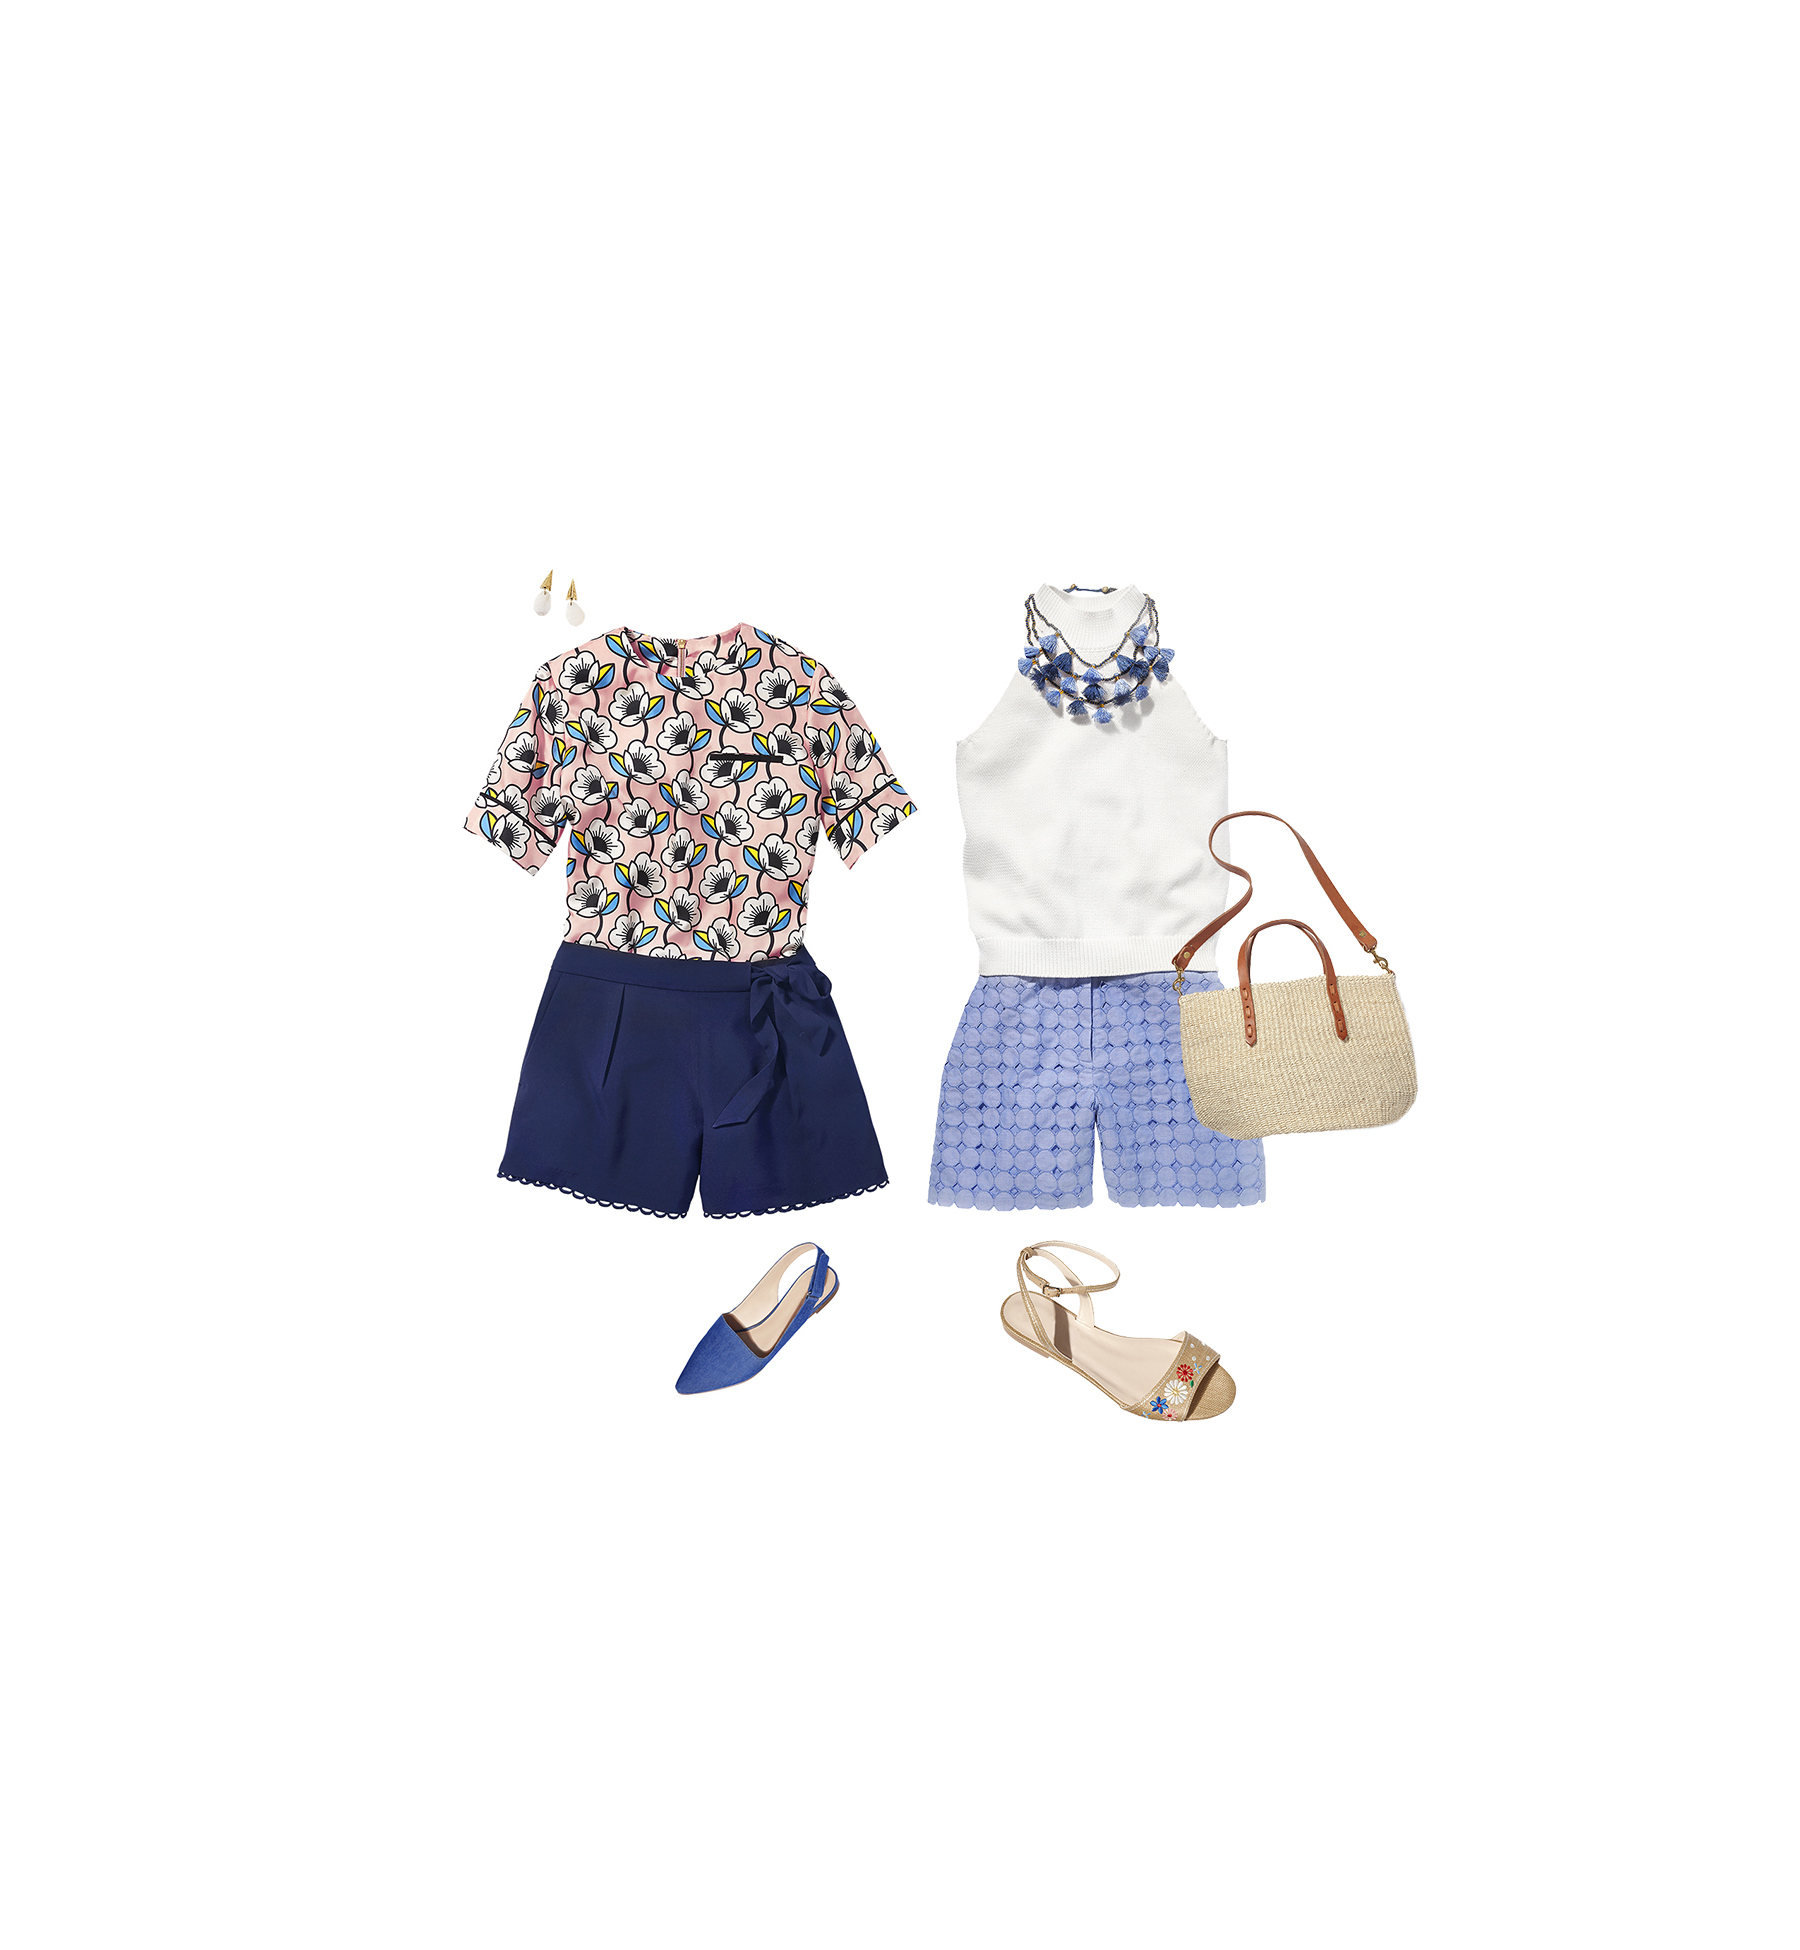 Midthigh-Length Shorts Outfits